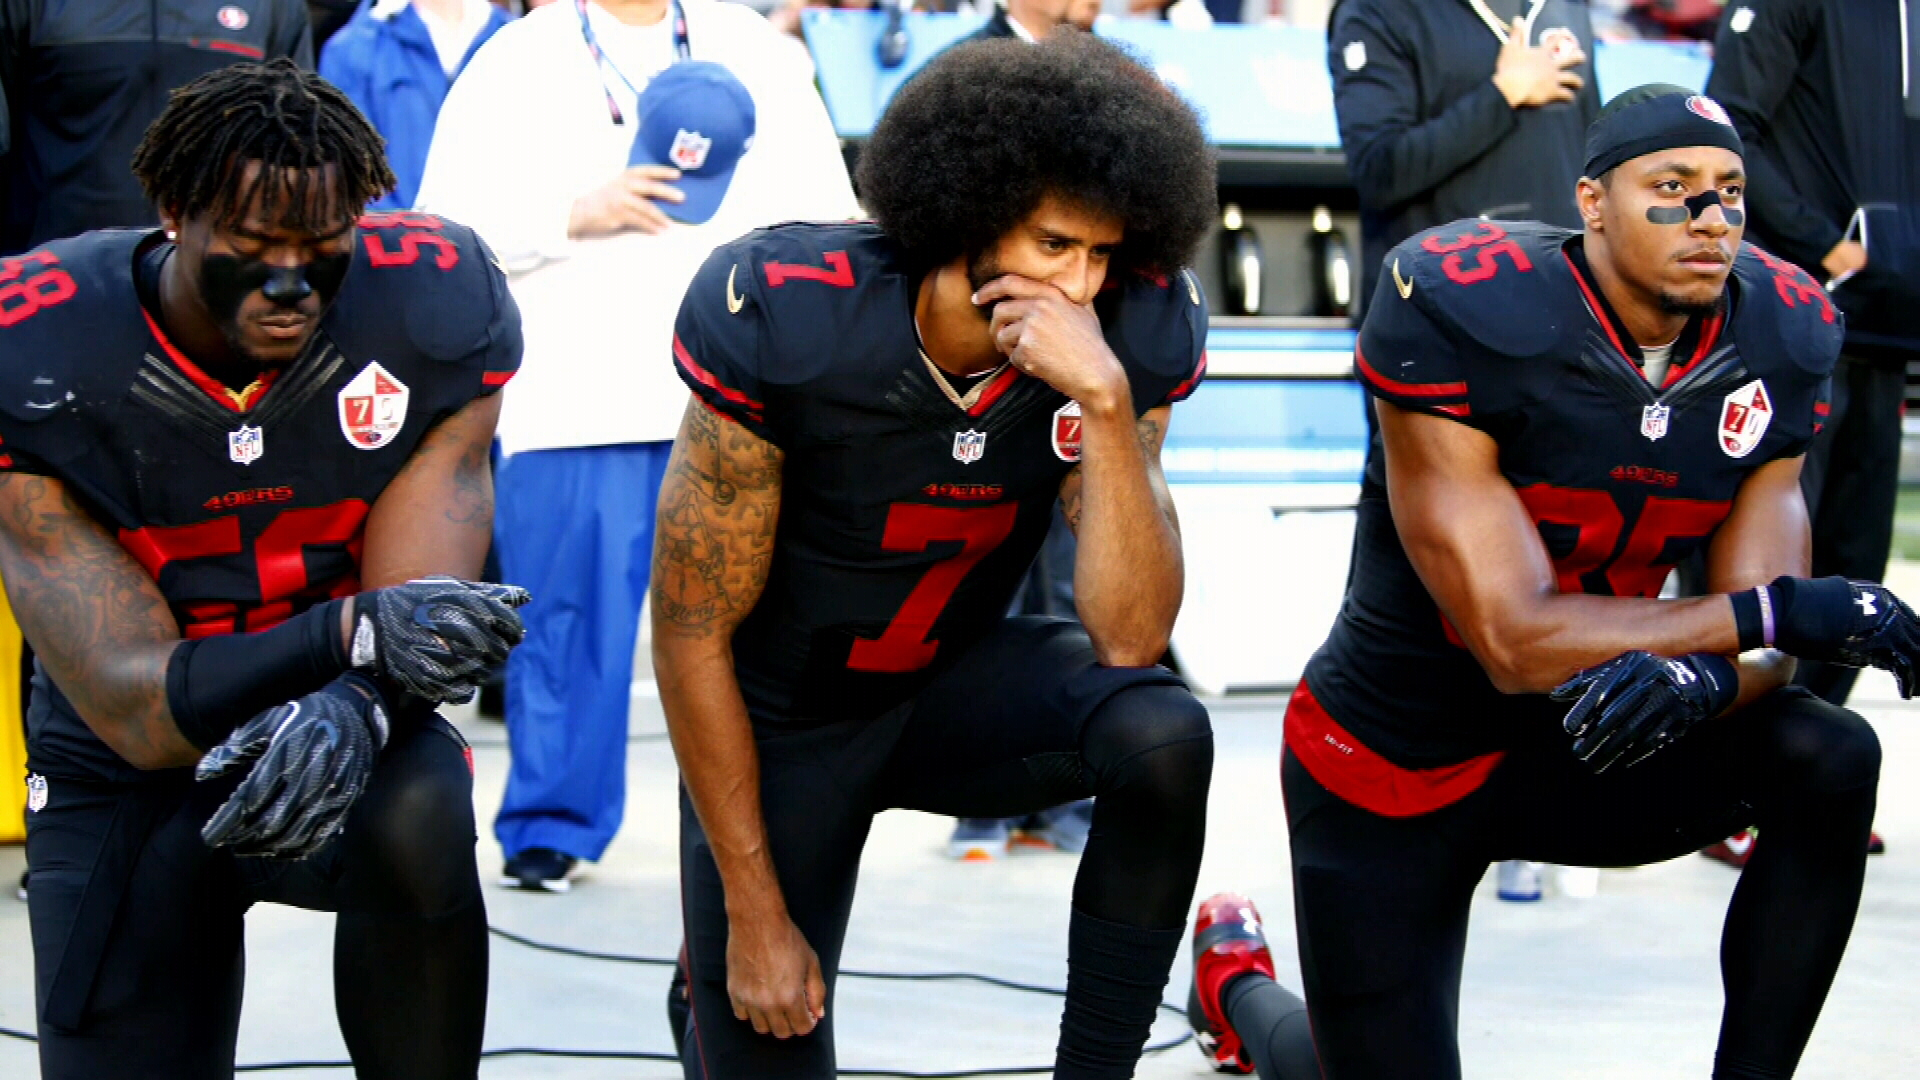 More than 100 NFL players in unprecedented protest